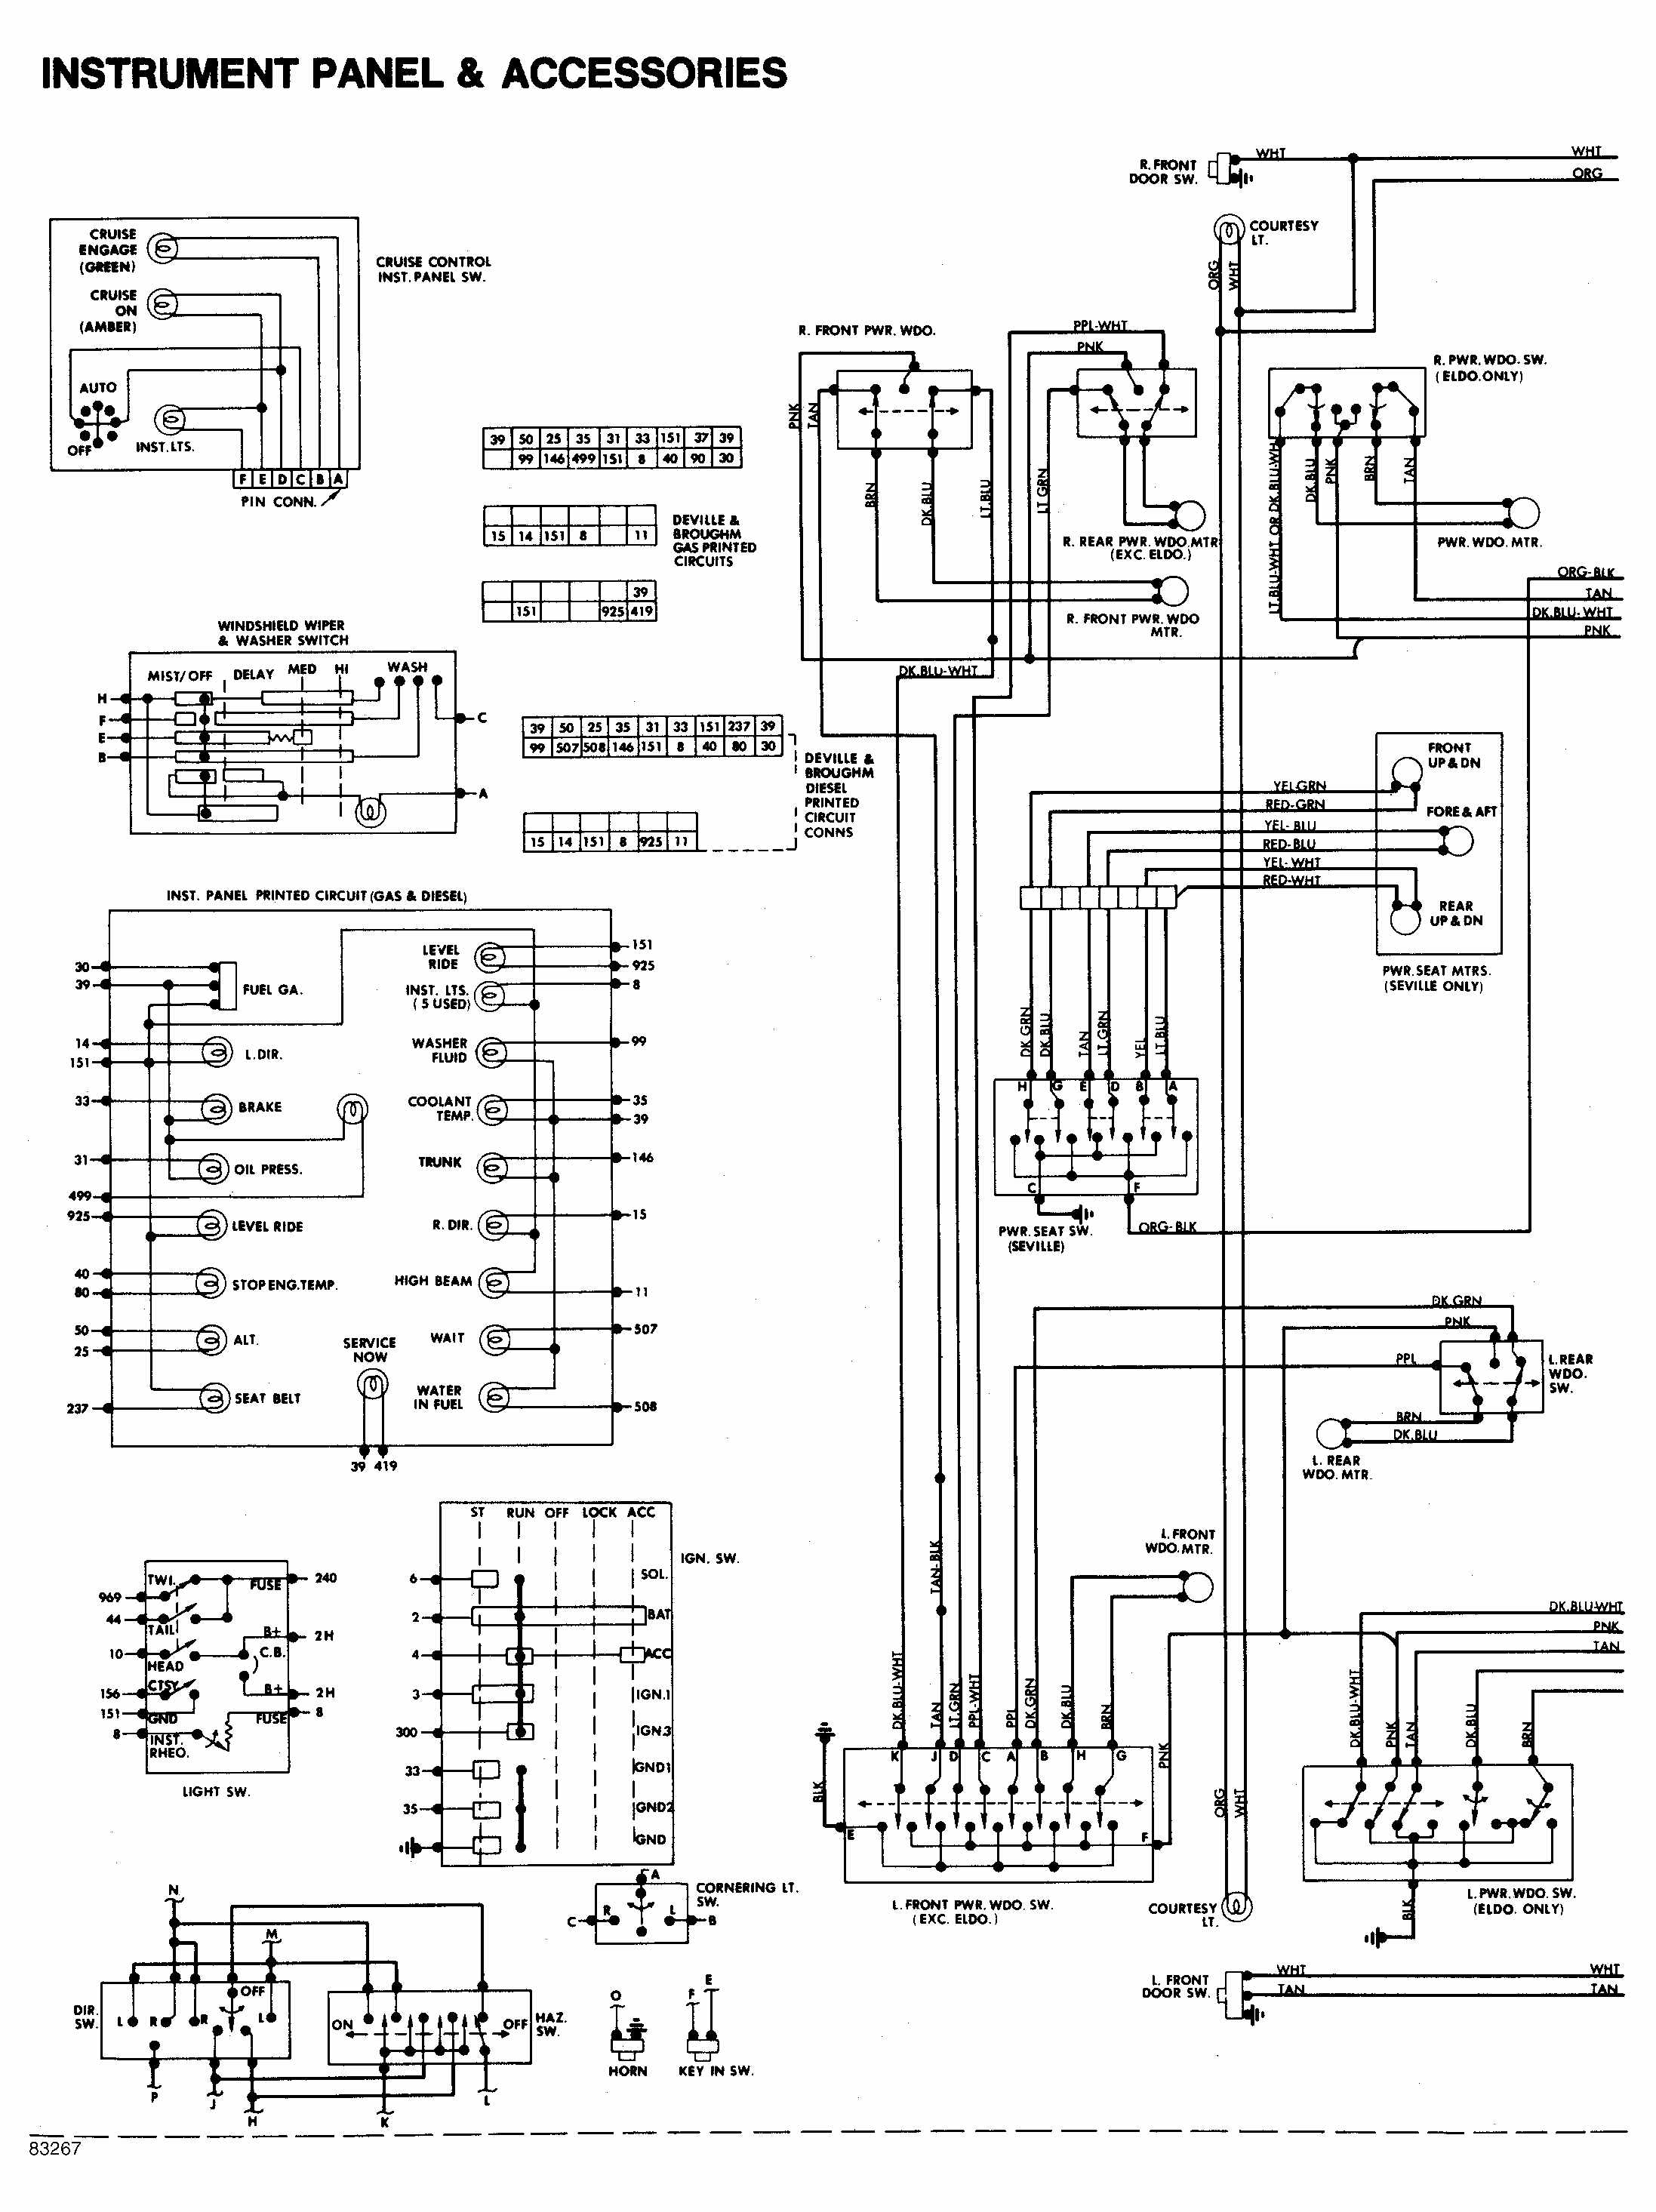 International Injector Wiring Diagram